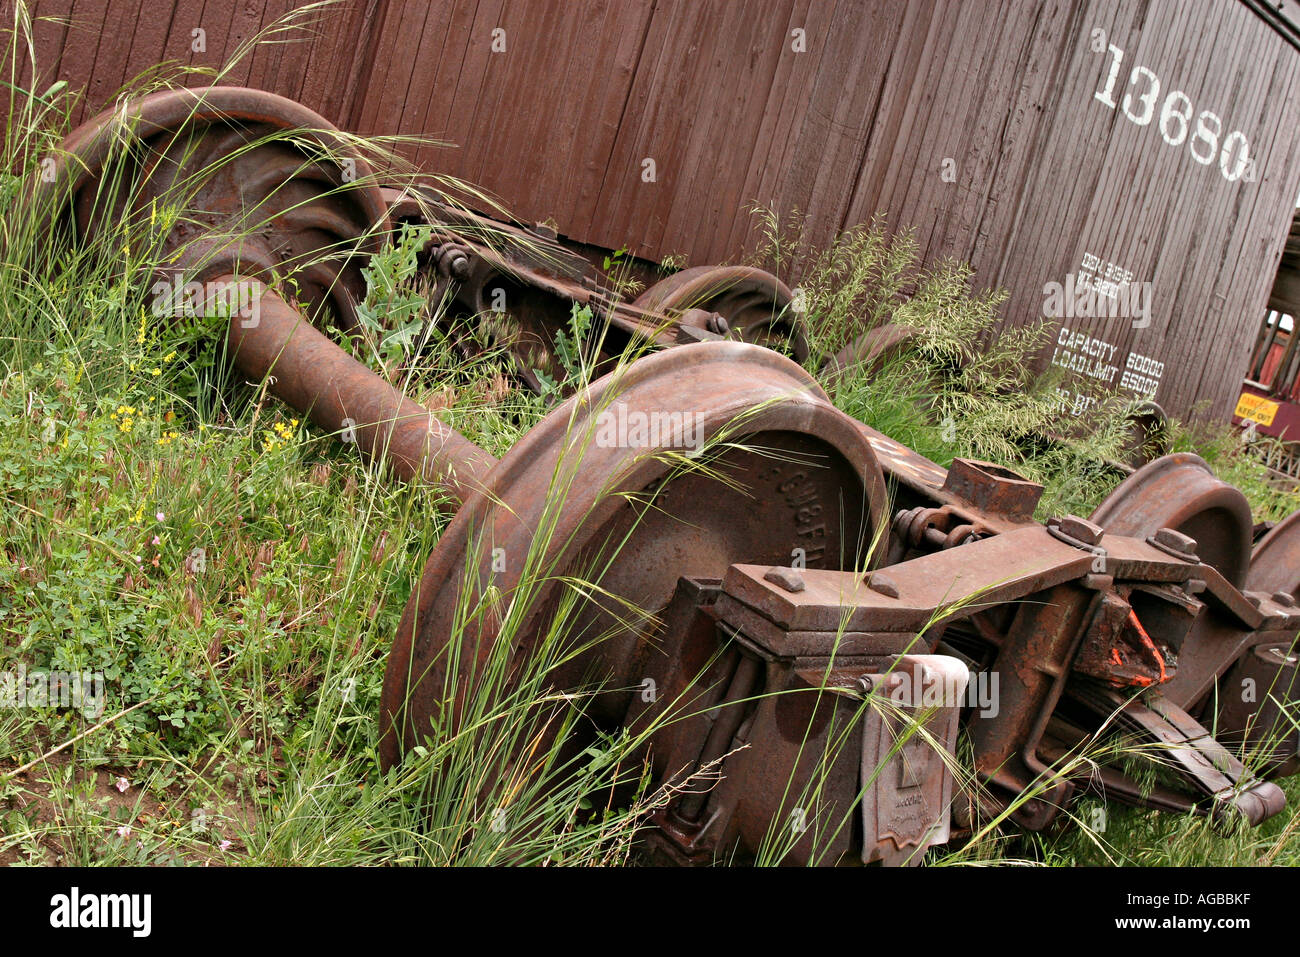 Set Of Train Wheels In The Weeds Next To An Aging Box Car In A